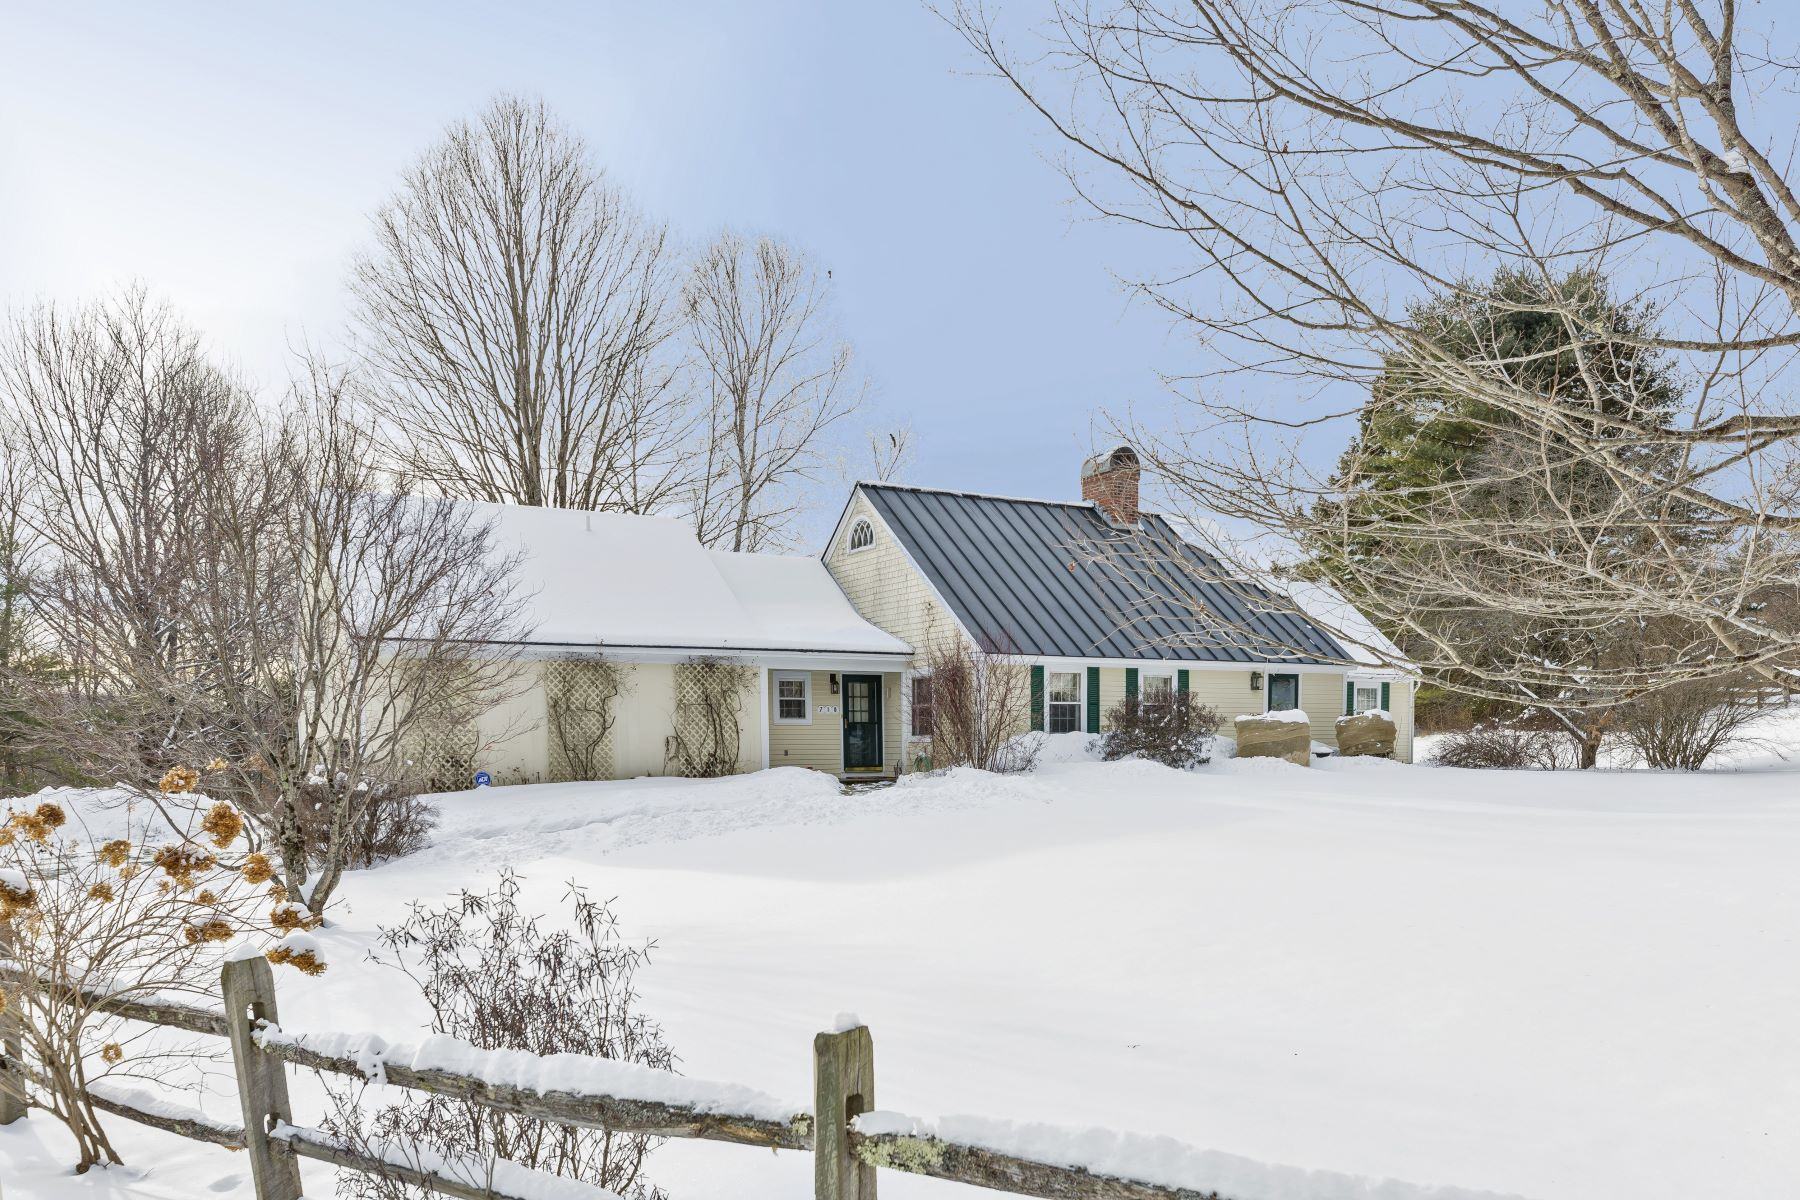 Single Family Homes for Sale at 710 Meadowland Farms Road, Hartford 710 Meadowland Farms Rd Hartford, Vermont 05059 United States